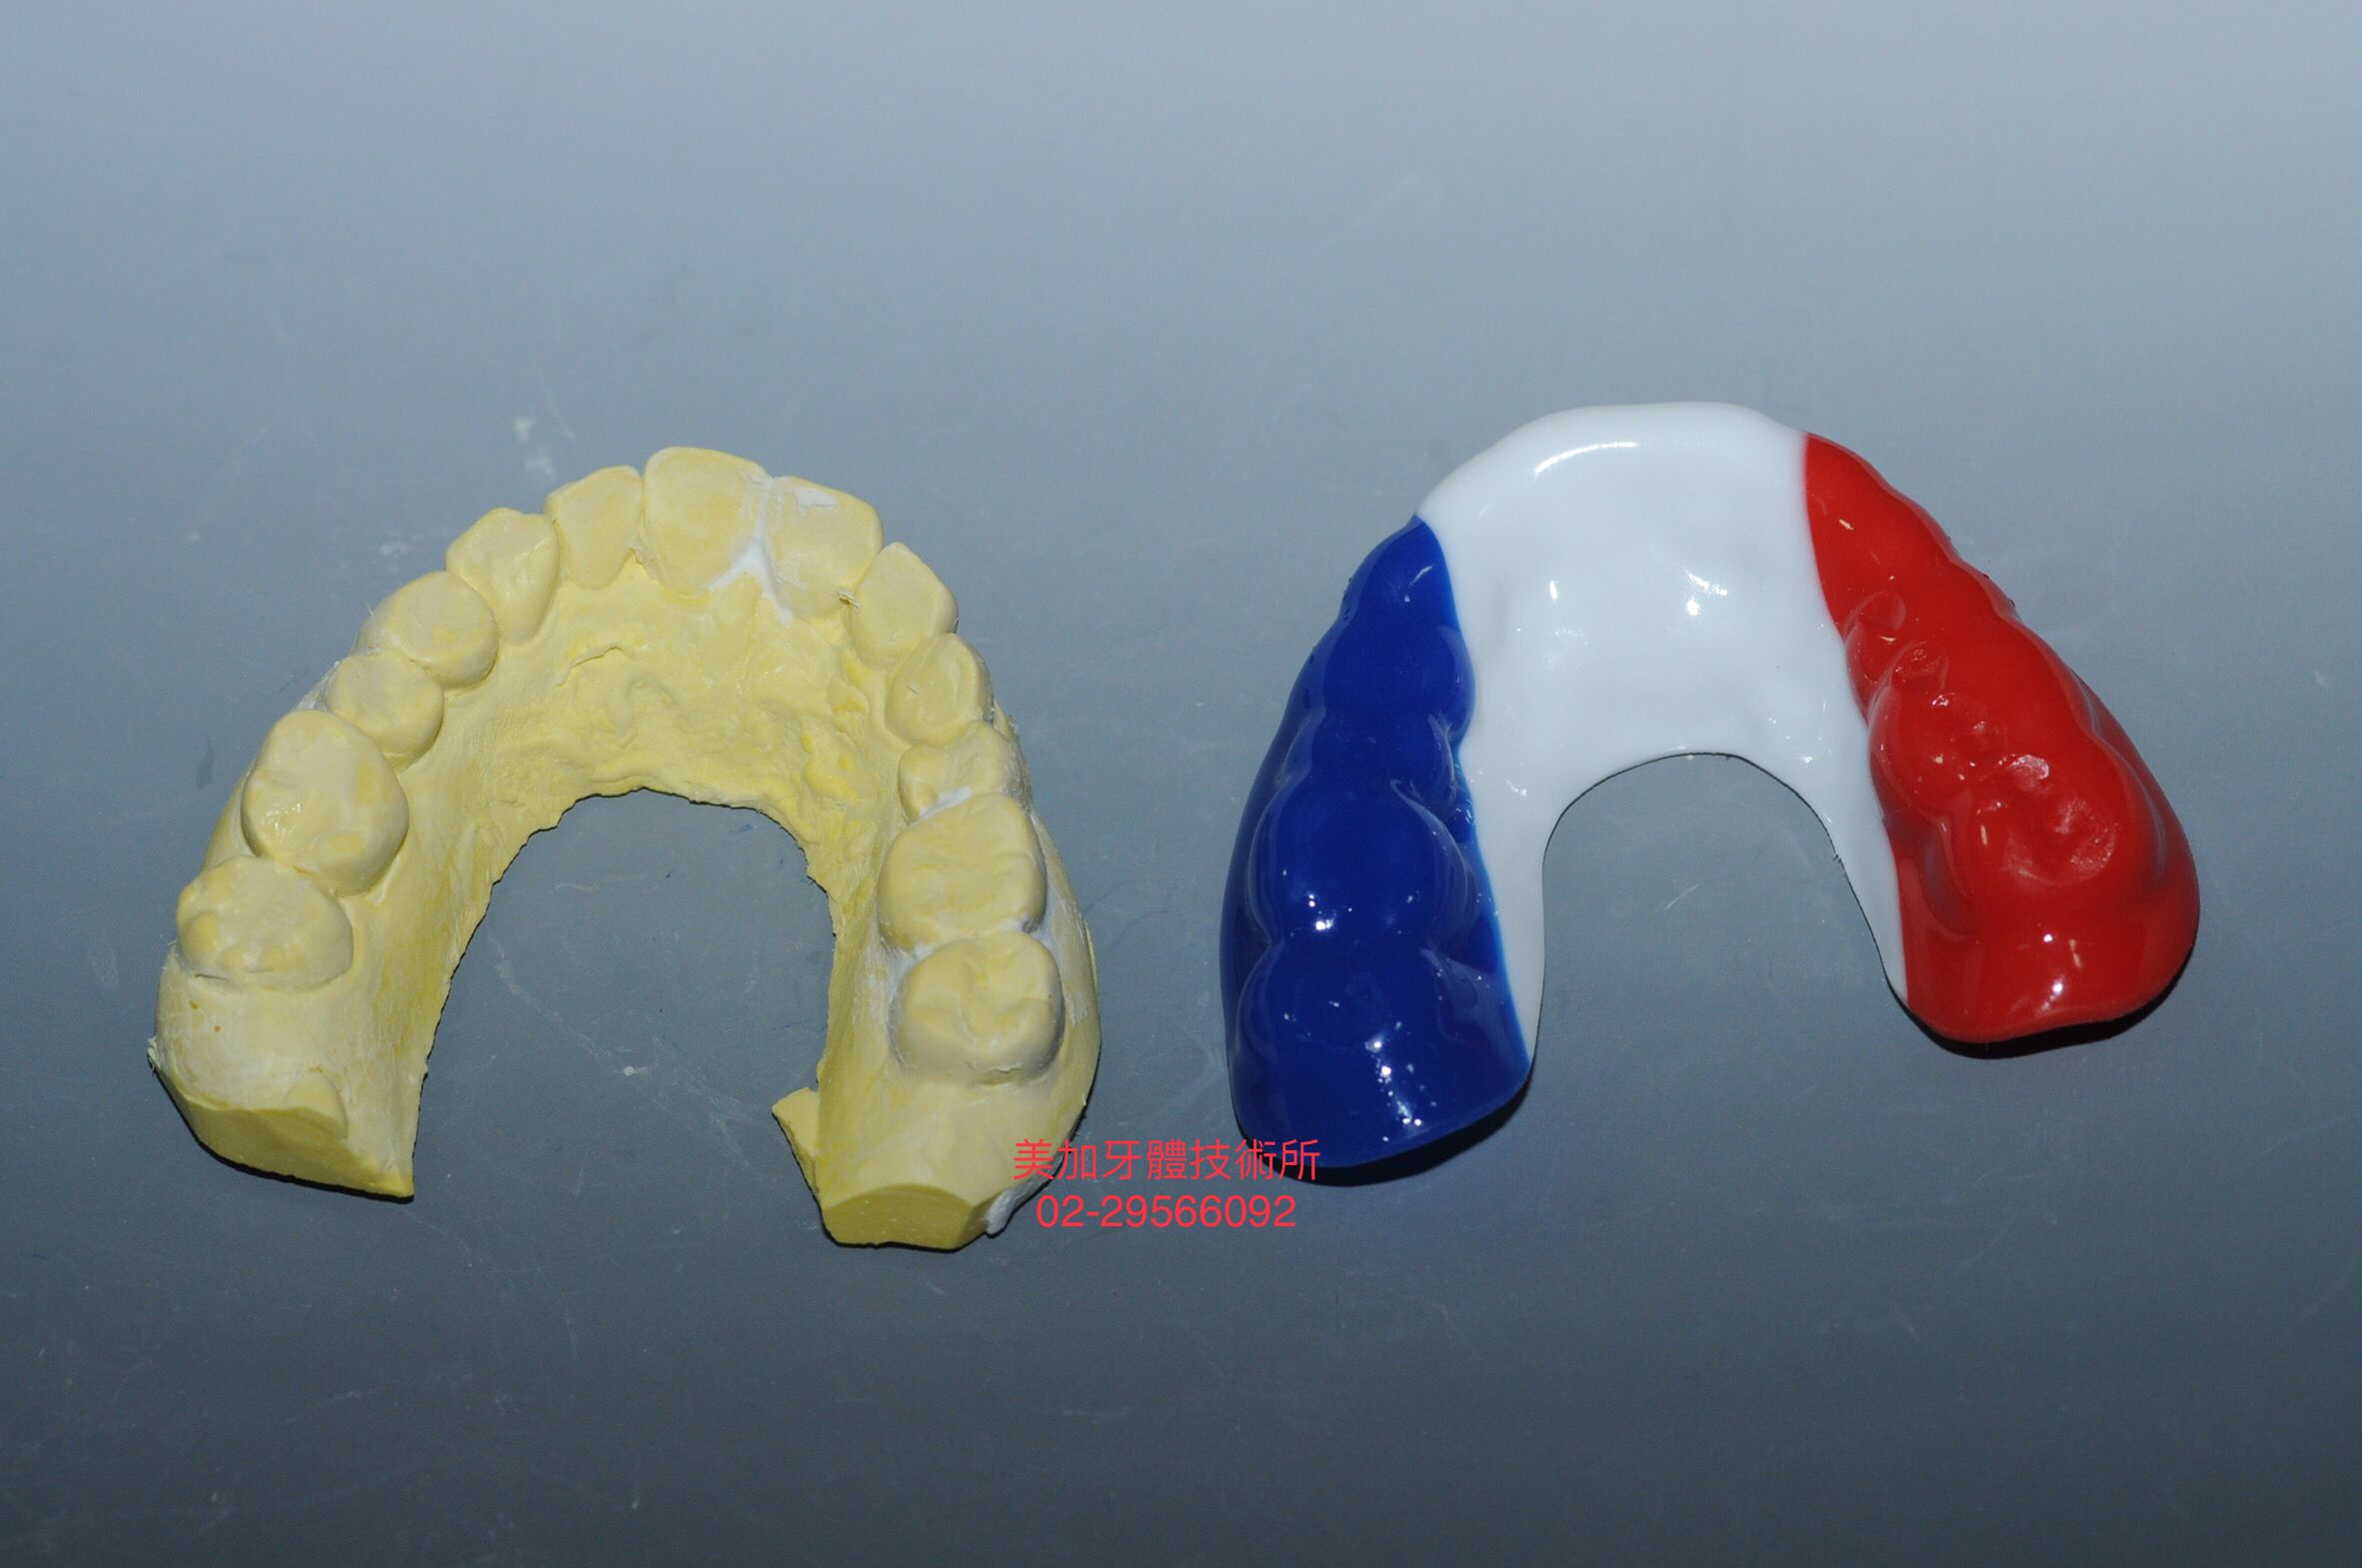 Pin by Tony Chang on Mouthguard Travel pillow, Mouth